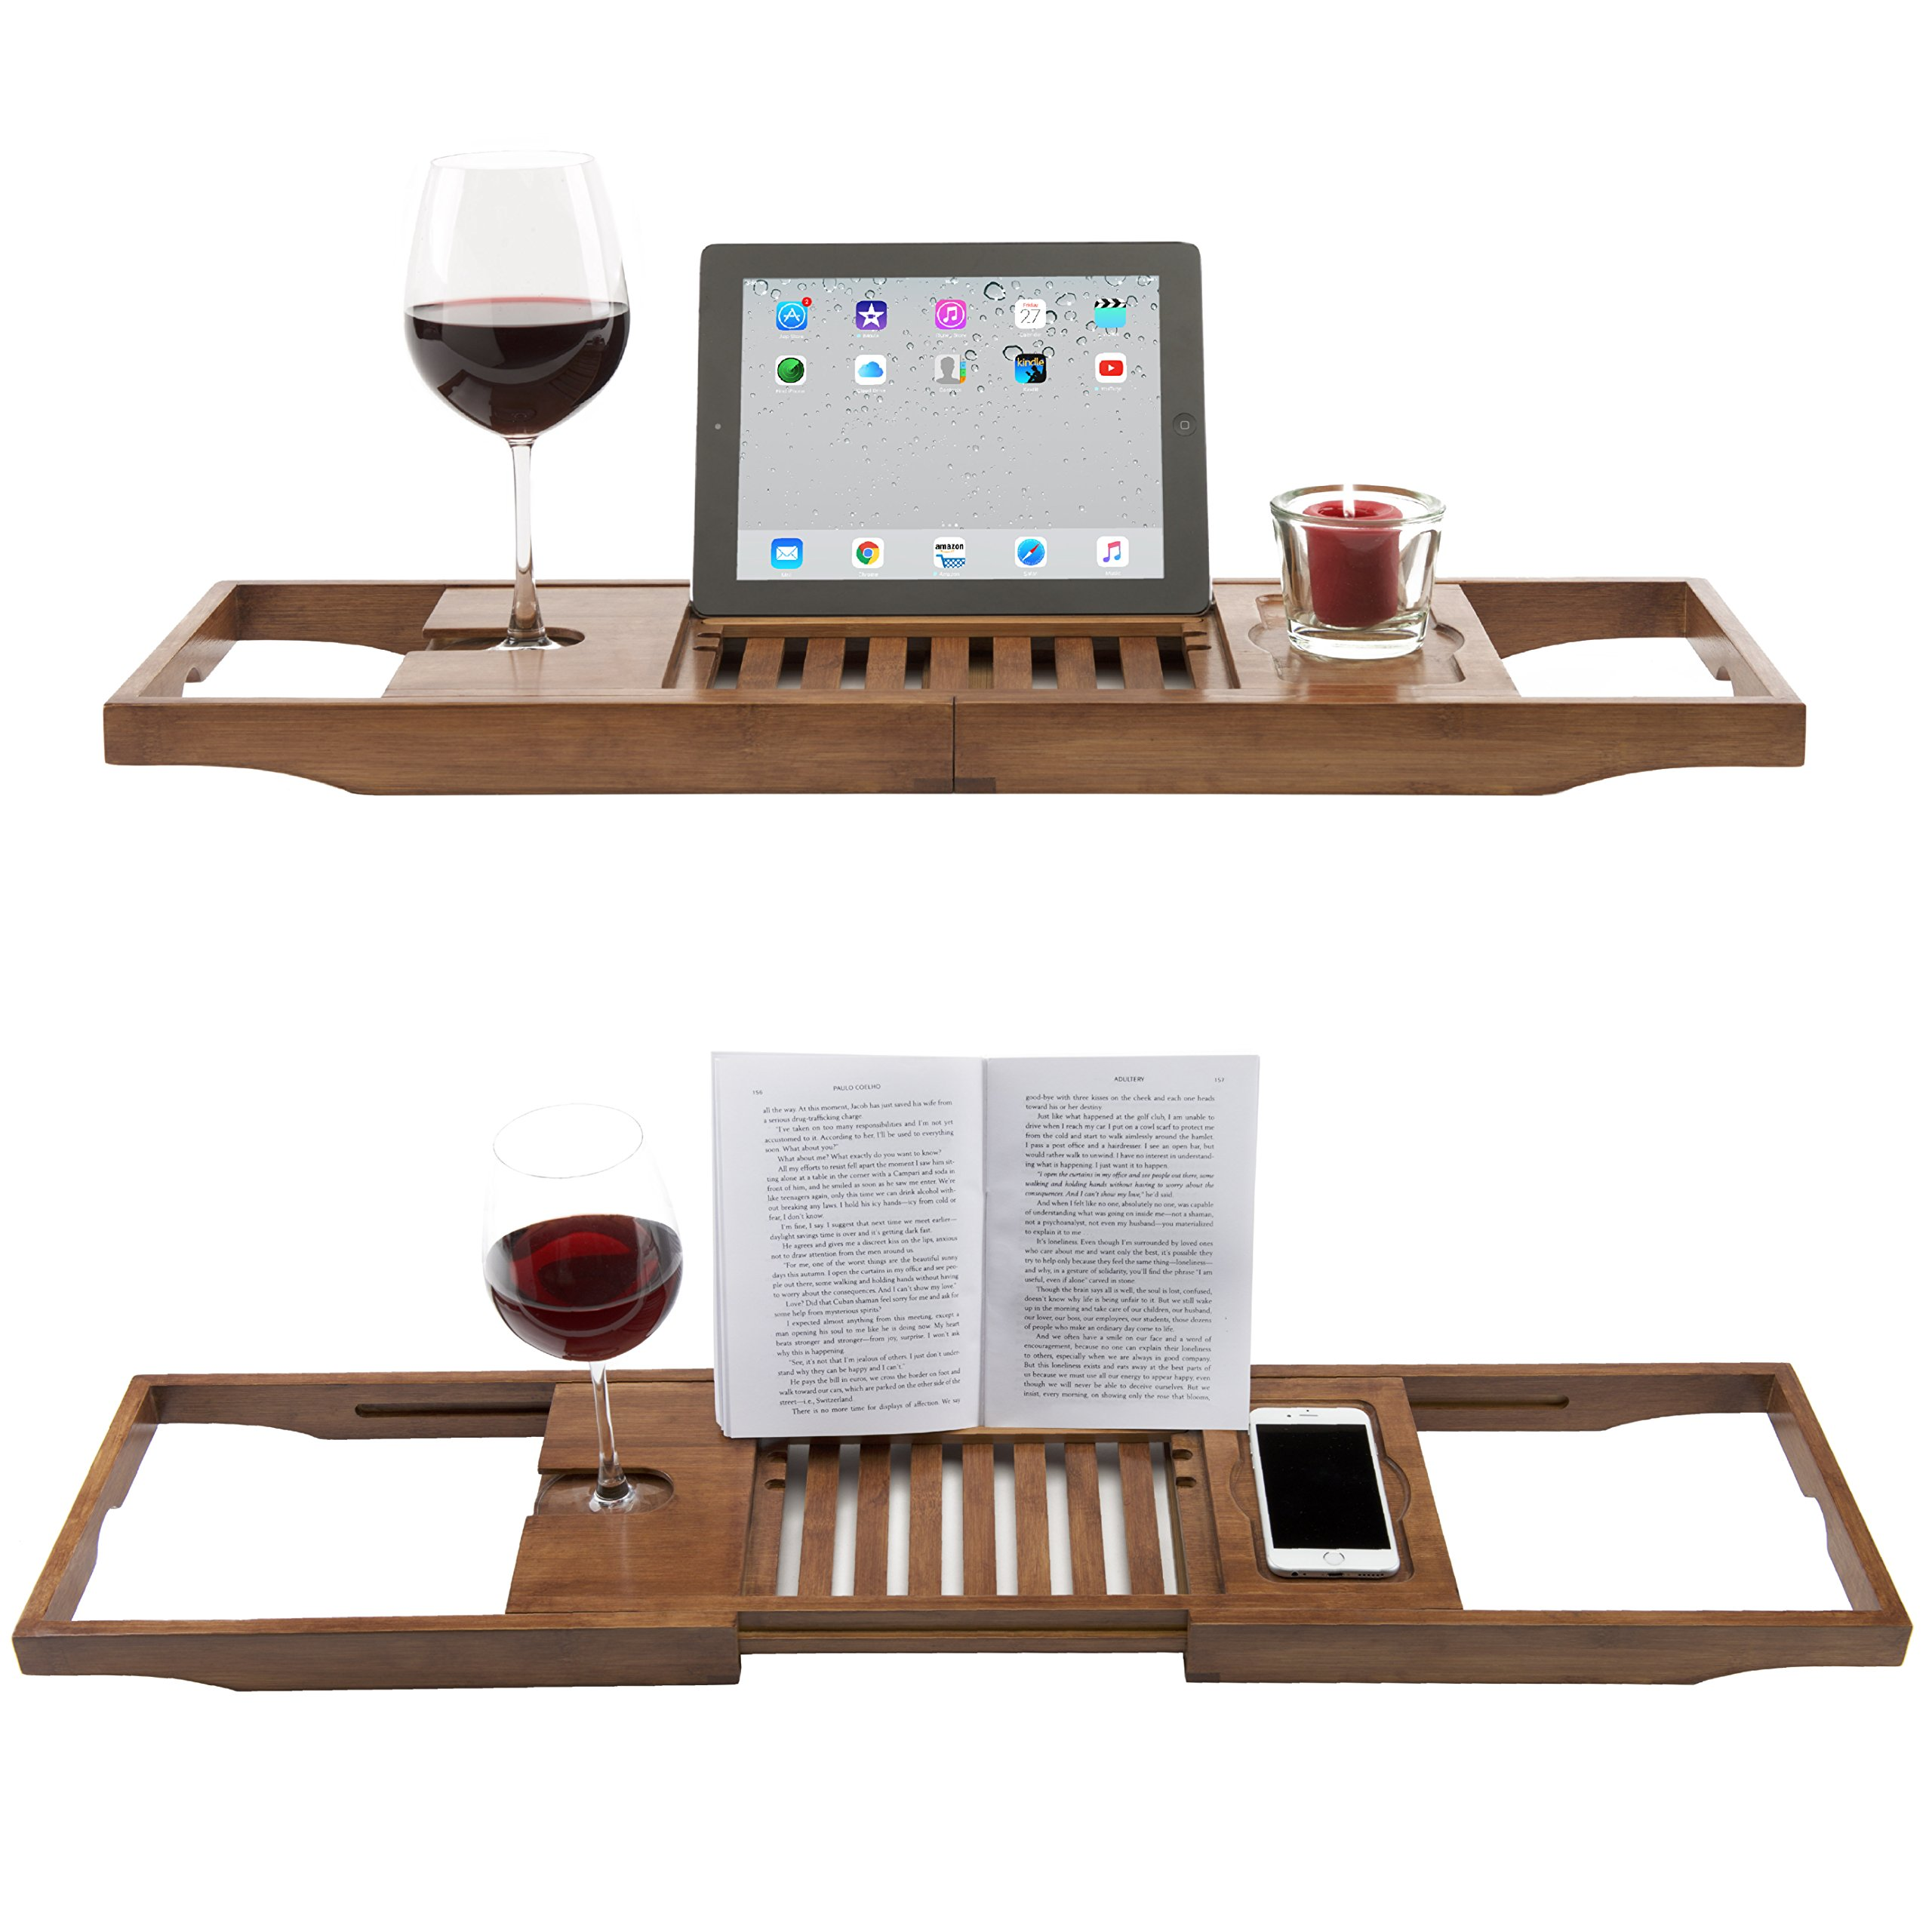 Luxury Dark Walnut Brown Bathtub Caddy, Natural Premium Bamboo Bath Tub Tray with Extending Sides, Reading Rack, Wine Glass, Book and Tablet Holder by Eden Bath (Image #1)